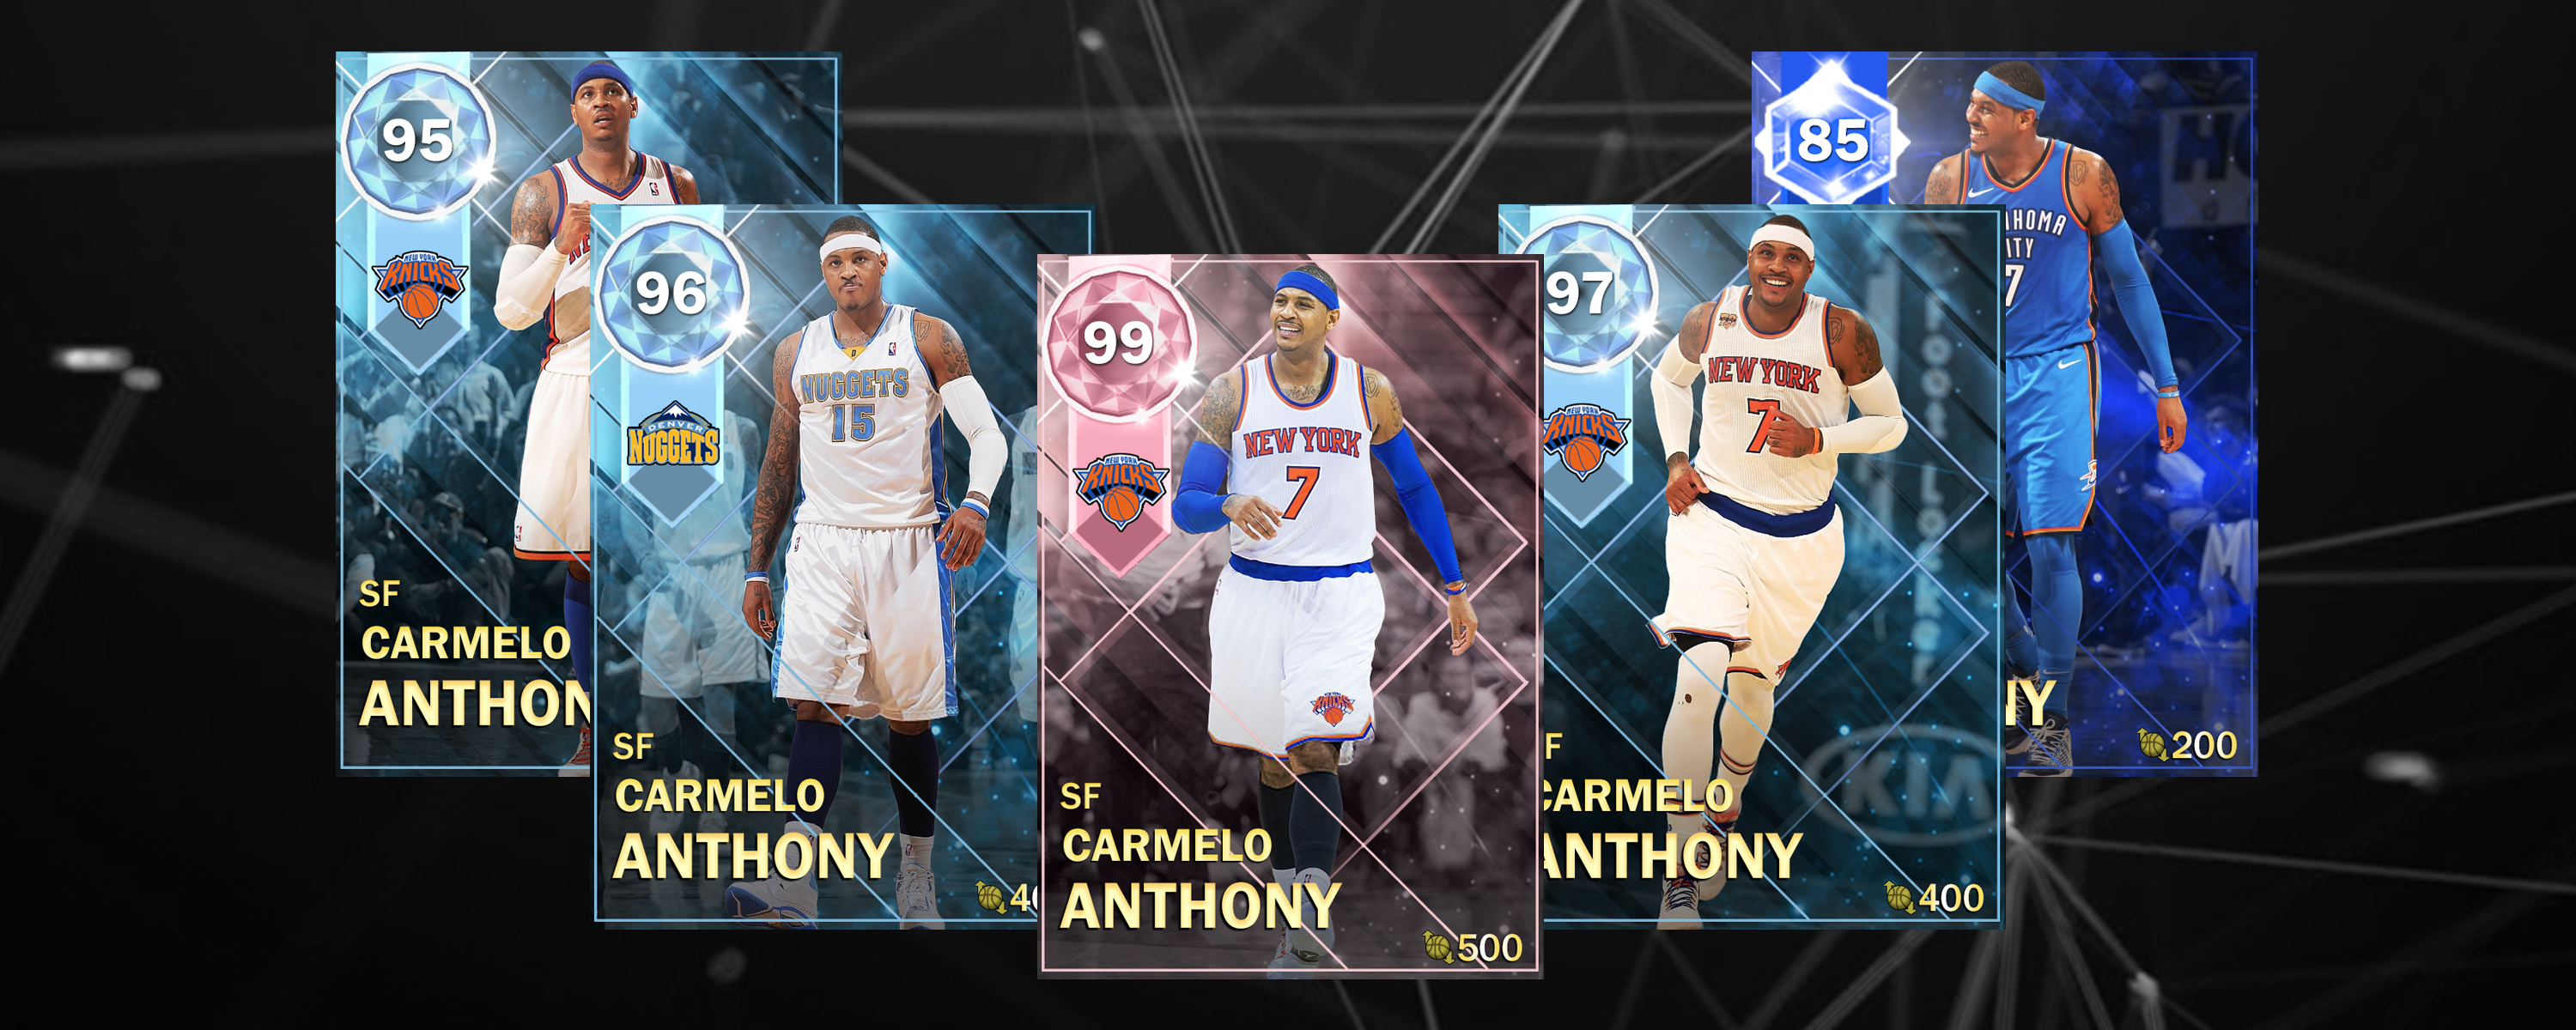 CARMELO ANTHONY TIMELINE - Forums - 2KMTCentral